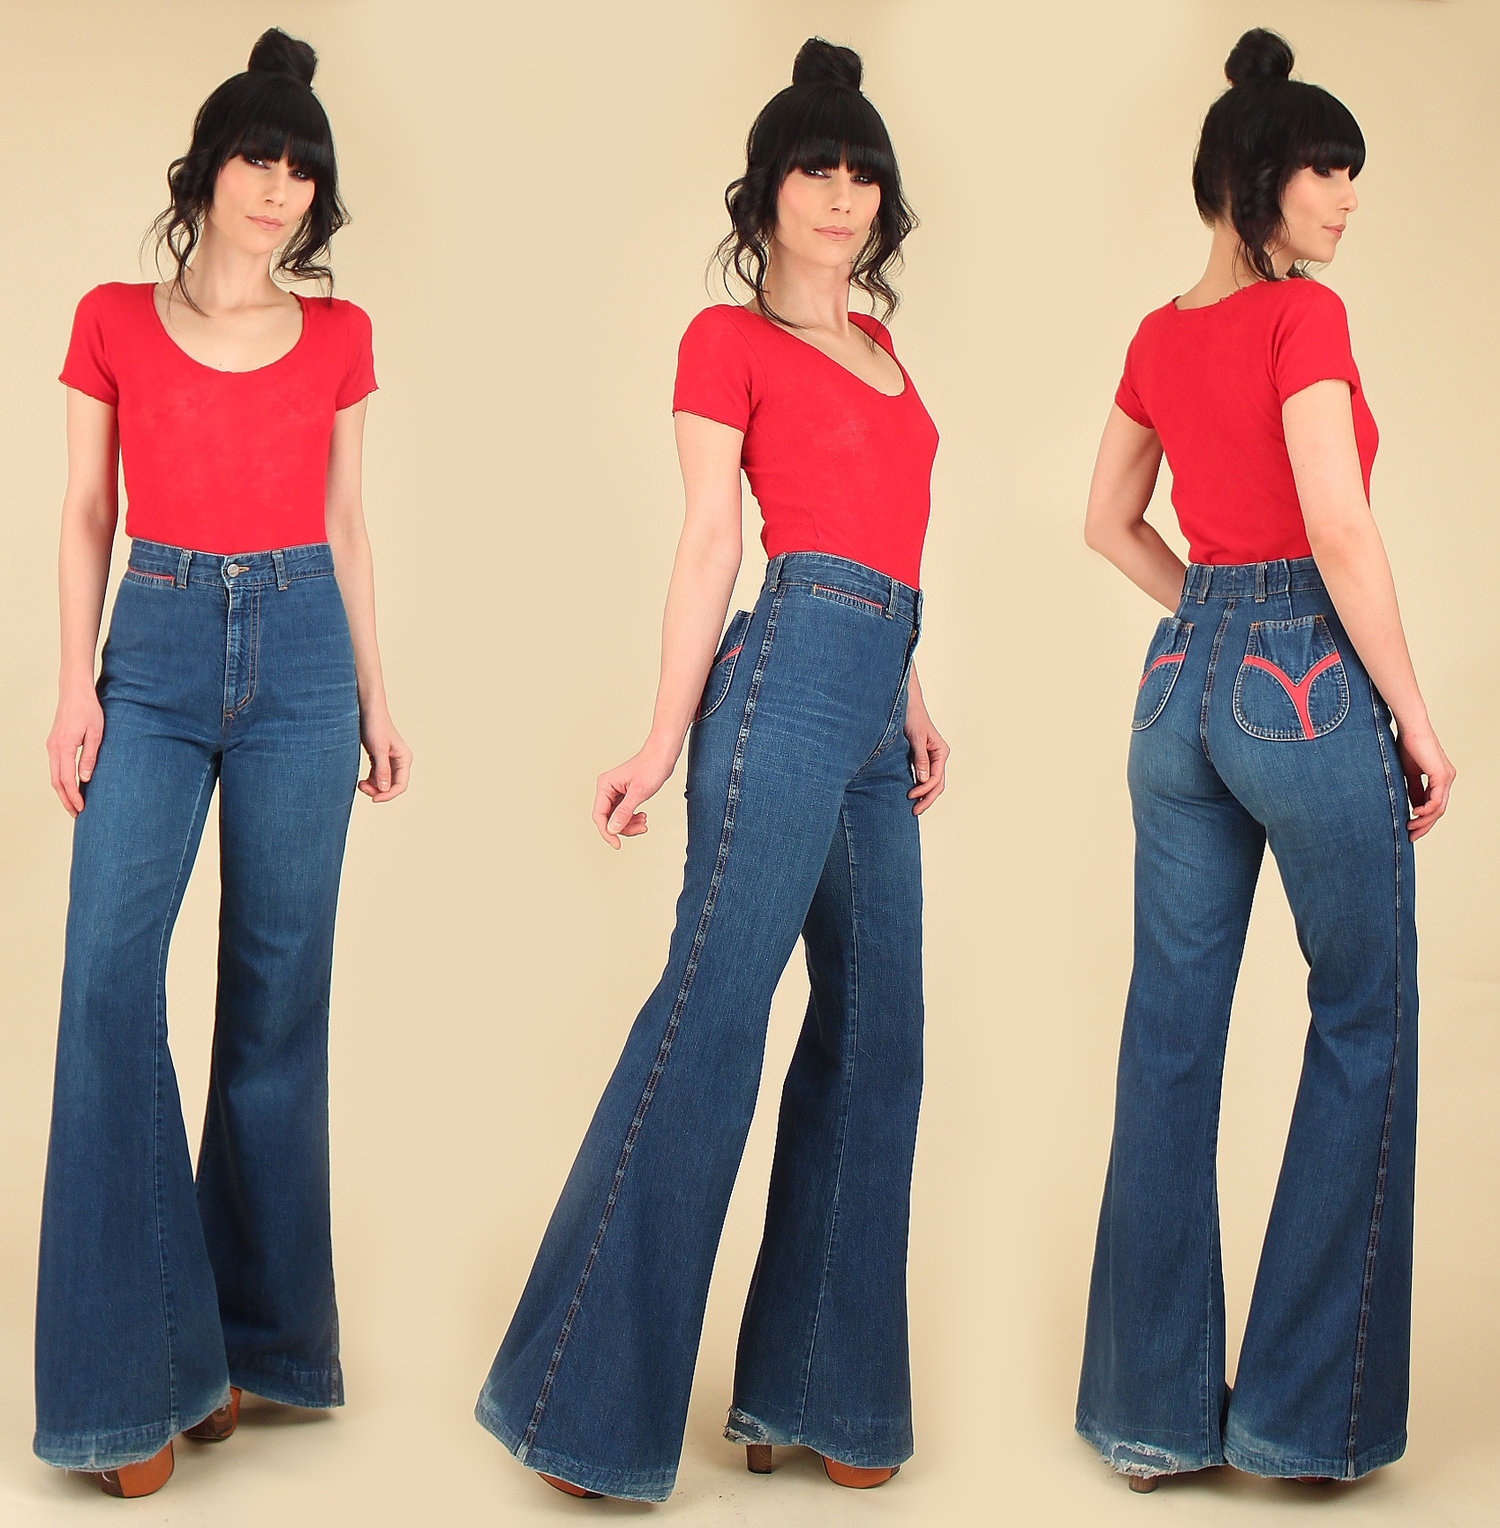 686b8dc228 Vintage 70s High Waisted Bell Bottom Jeans // by Chemin de Fer — Hellhound  Vintage